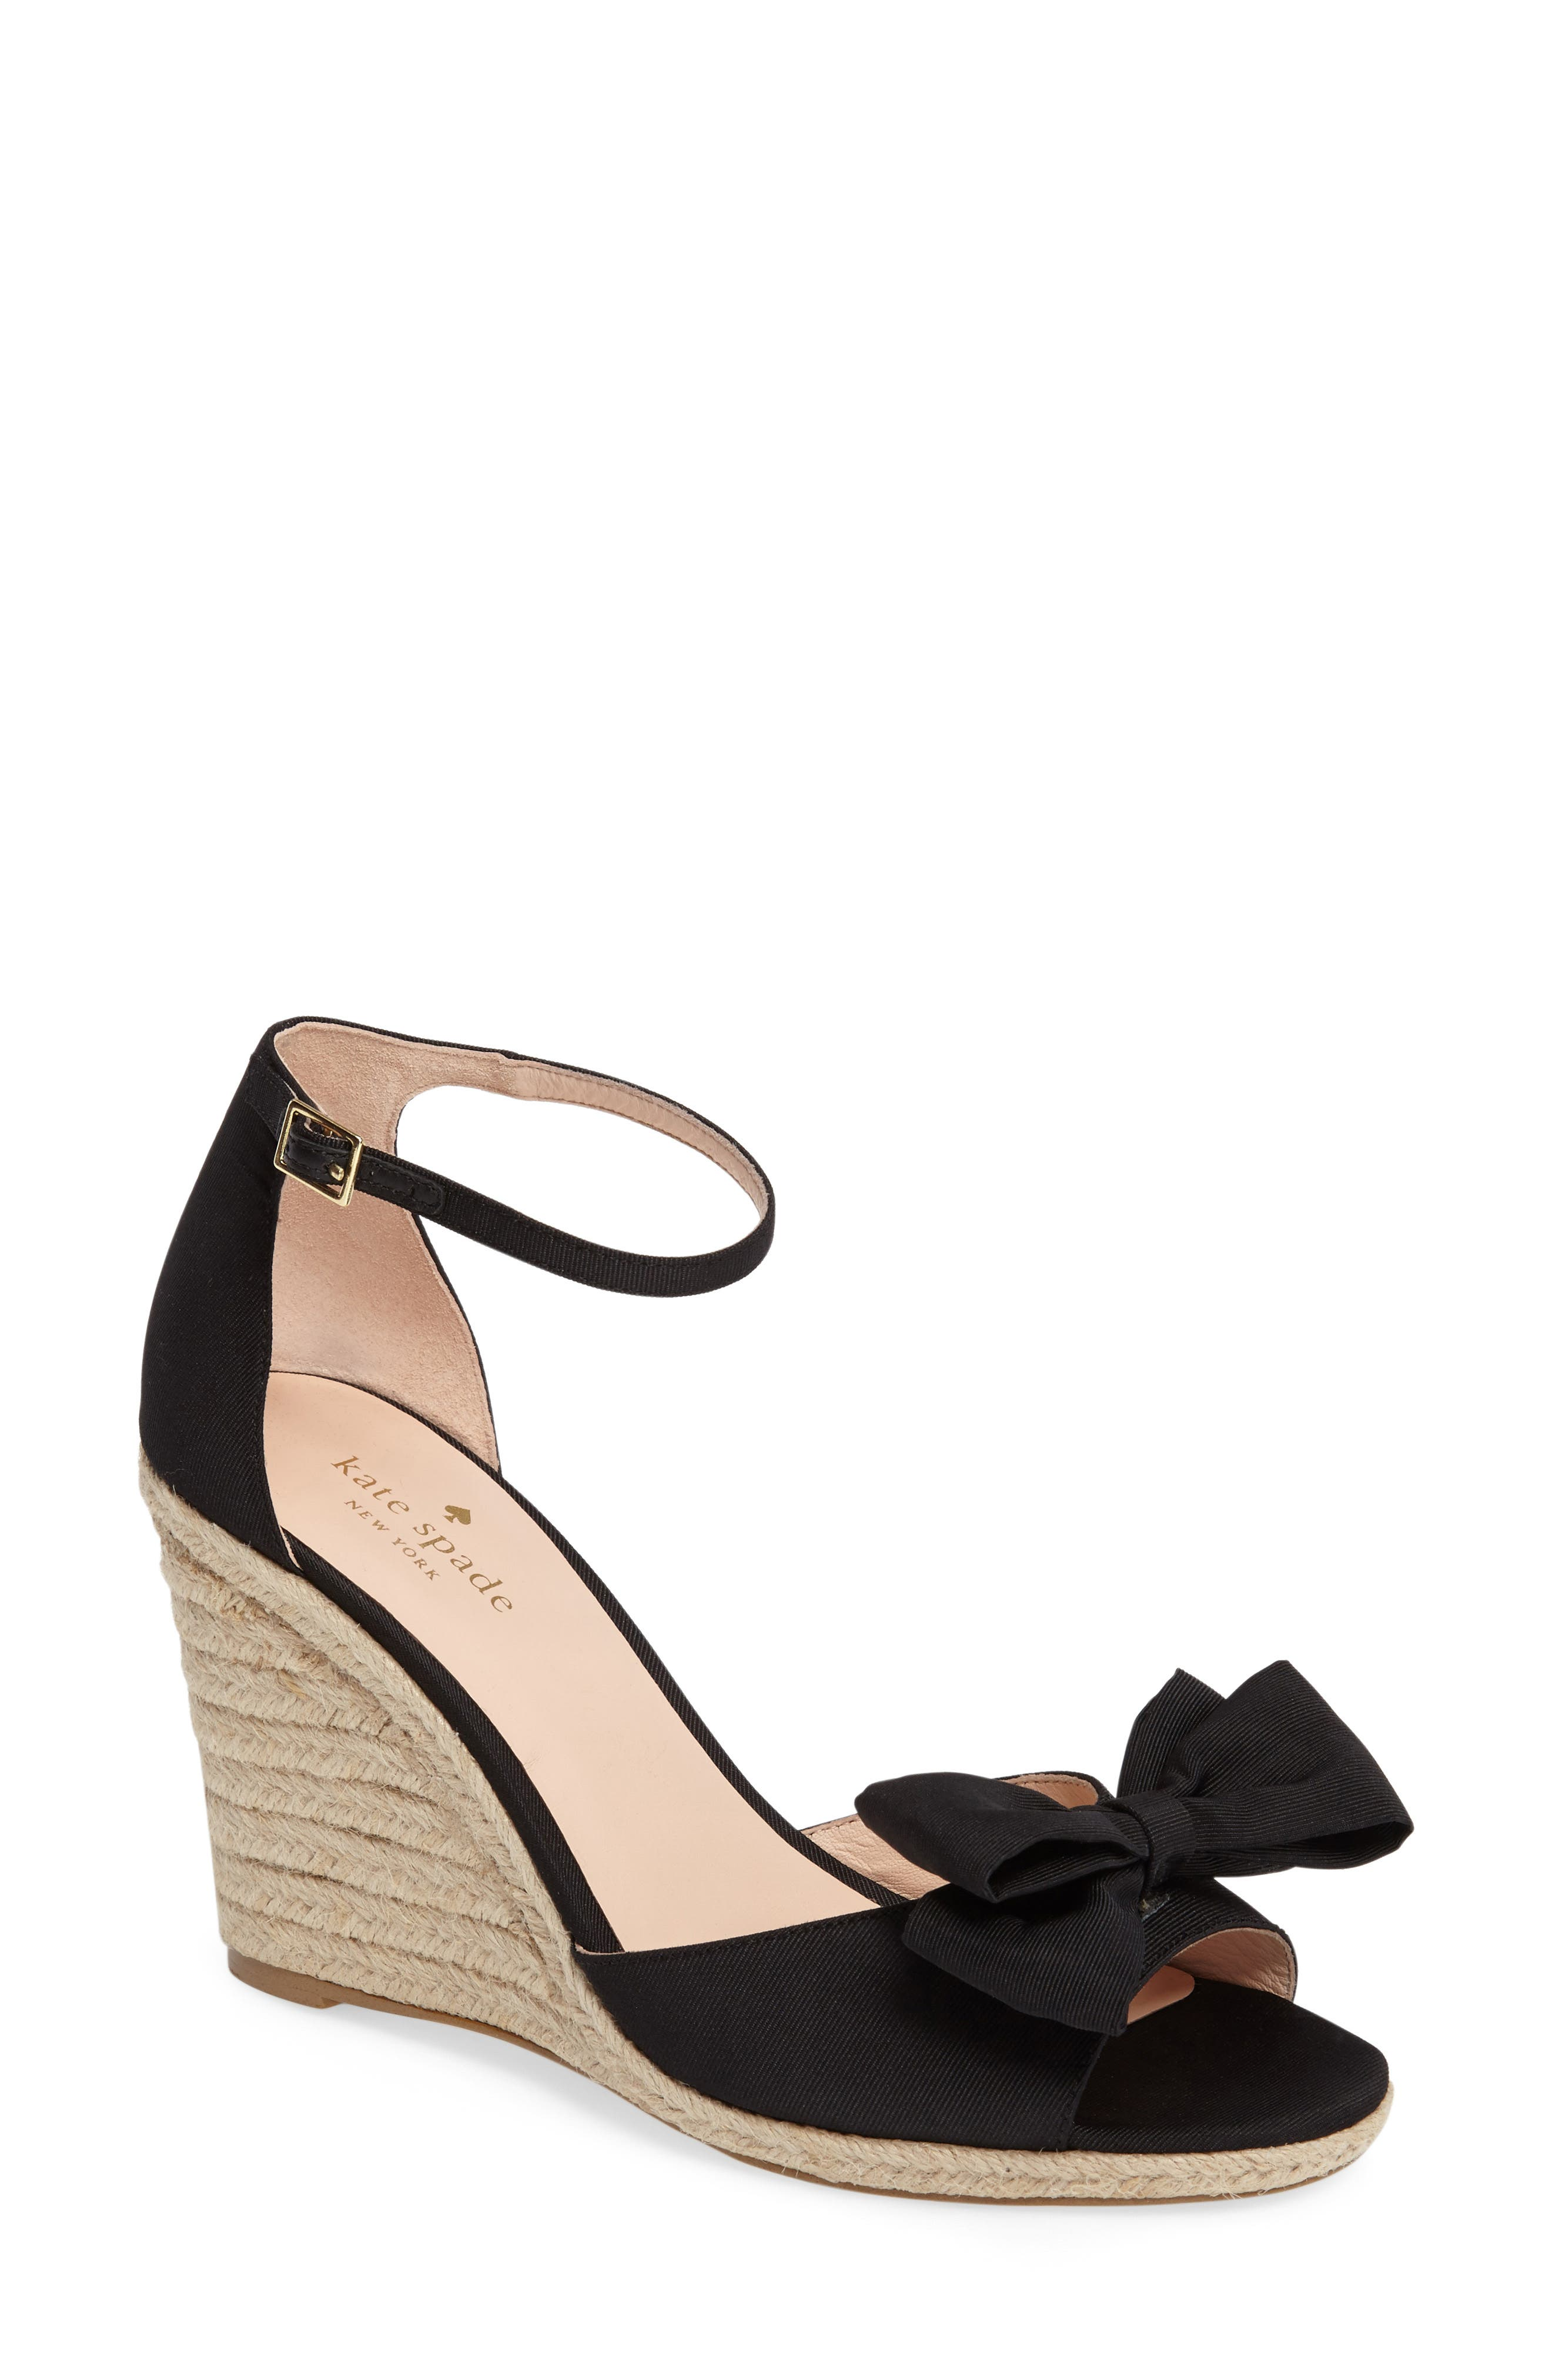 Alternate Image 1 Selected - kate spade new york broome wedge sandal (Women)